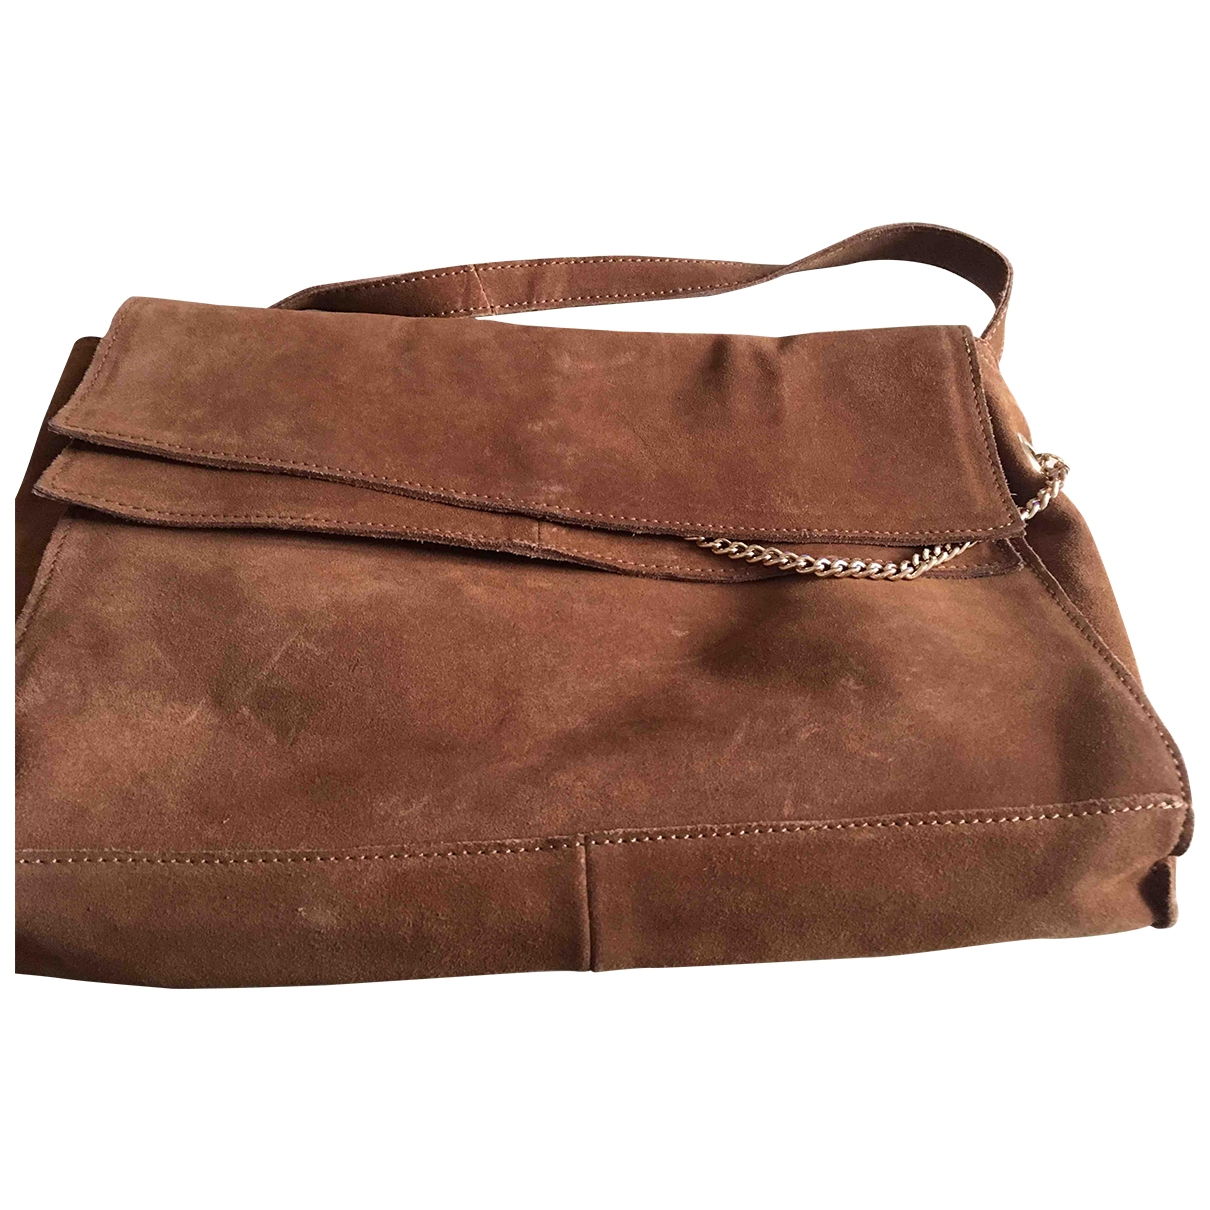 Zara \N Camel Suede Clutch bag for Women \N